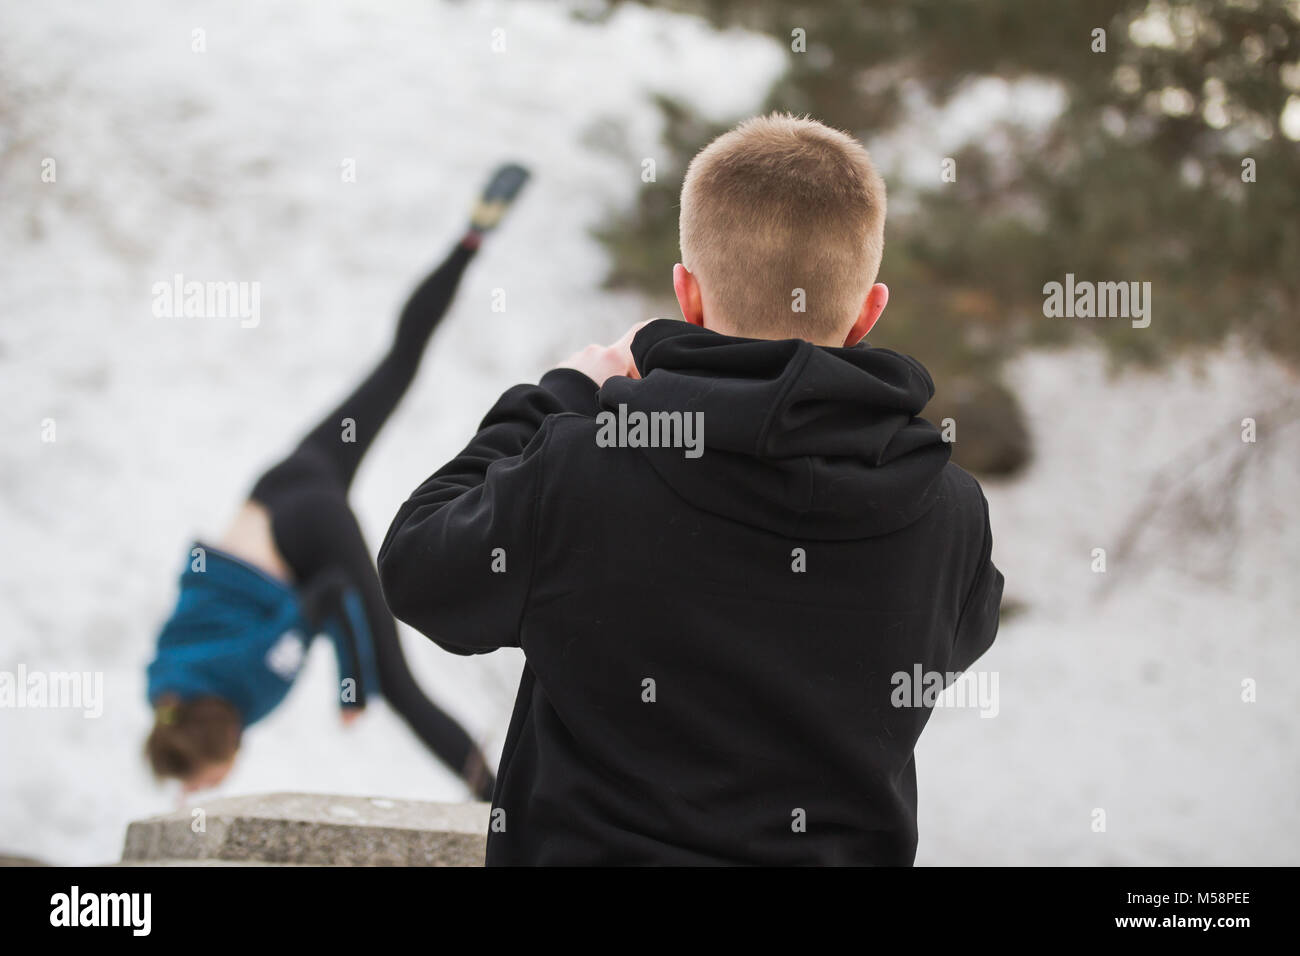 Teenager boy looking to acrobatic jump girl in winter city park - parkour concept Stock Photo